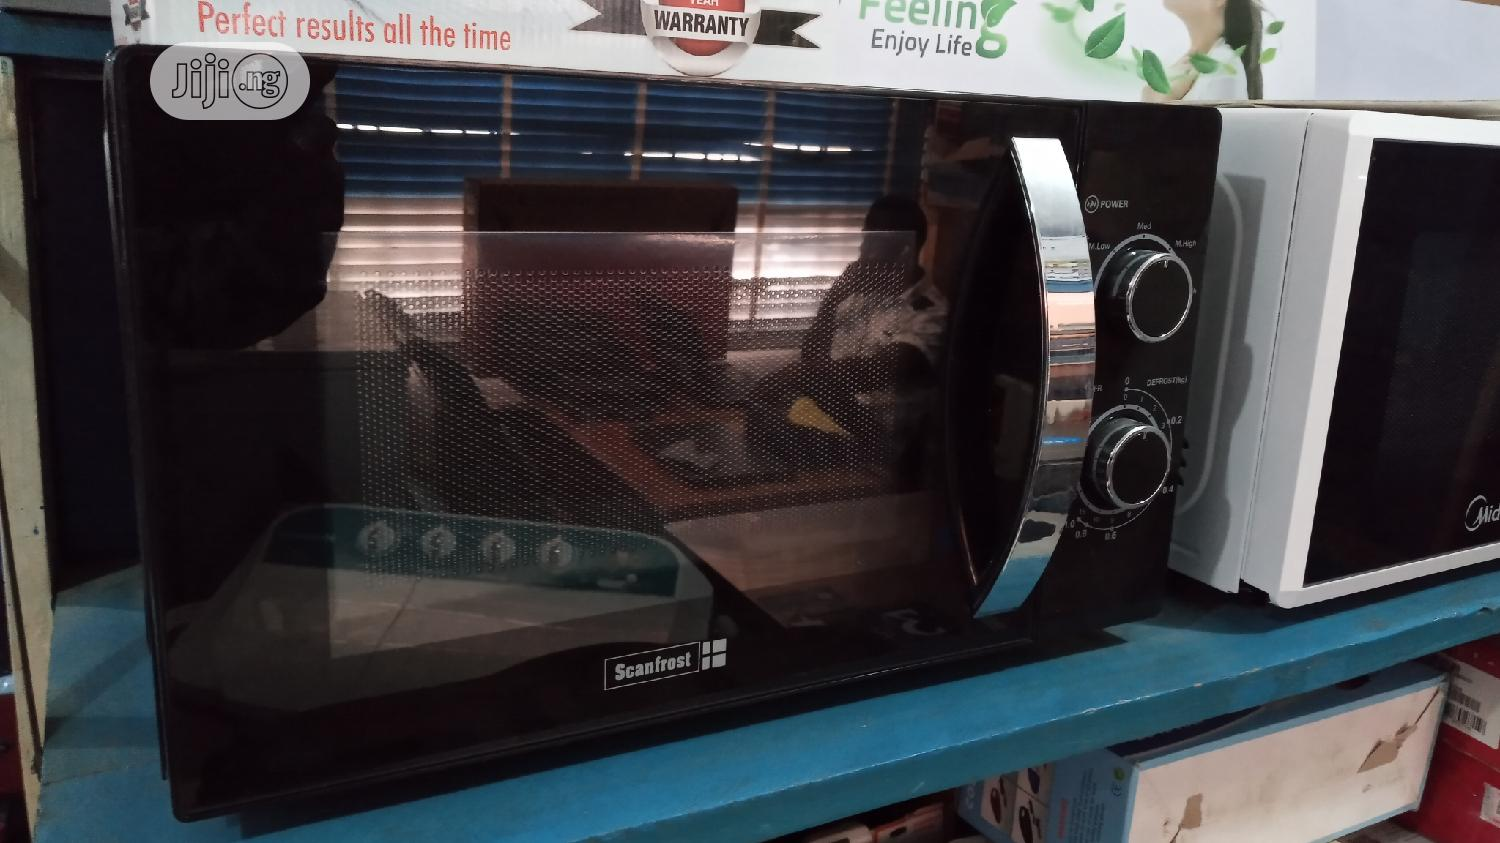 Scanfrost Microwave Oven SFMWO20CM